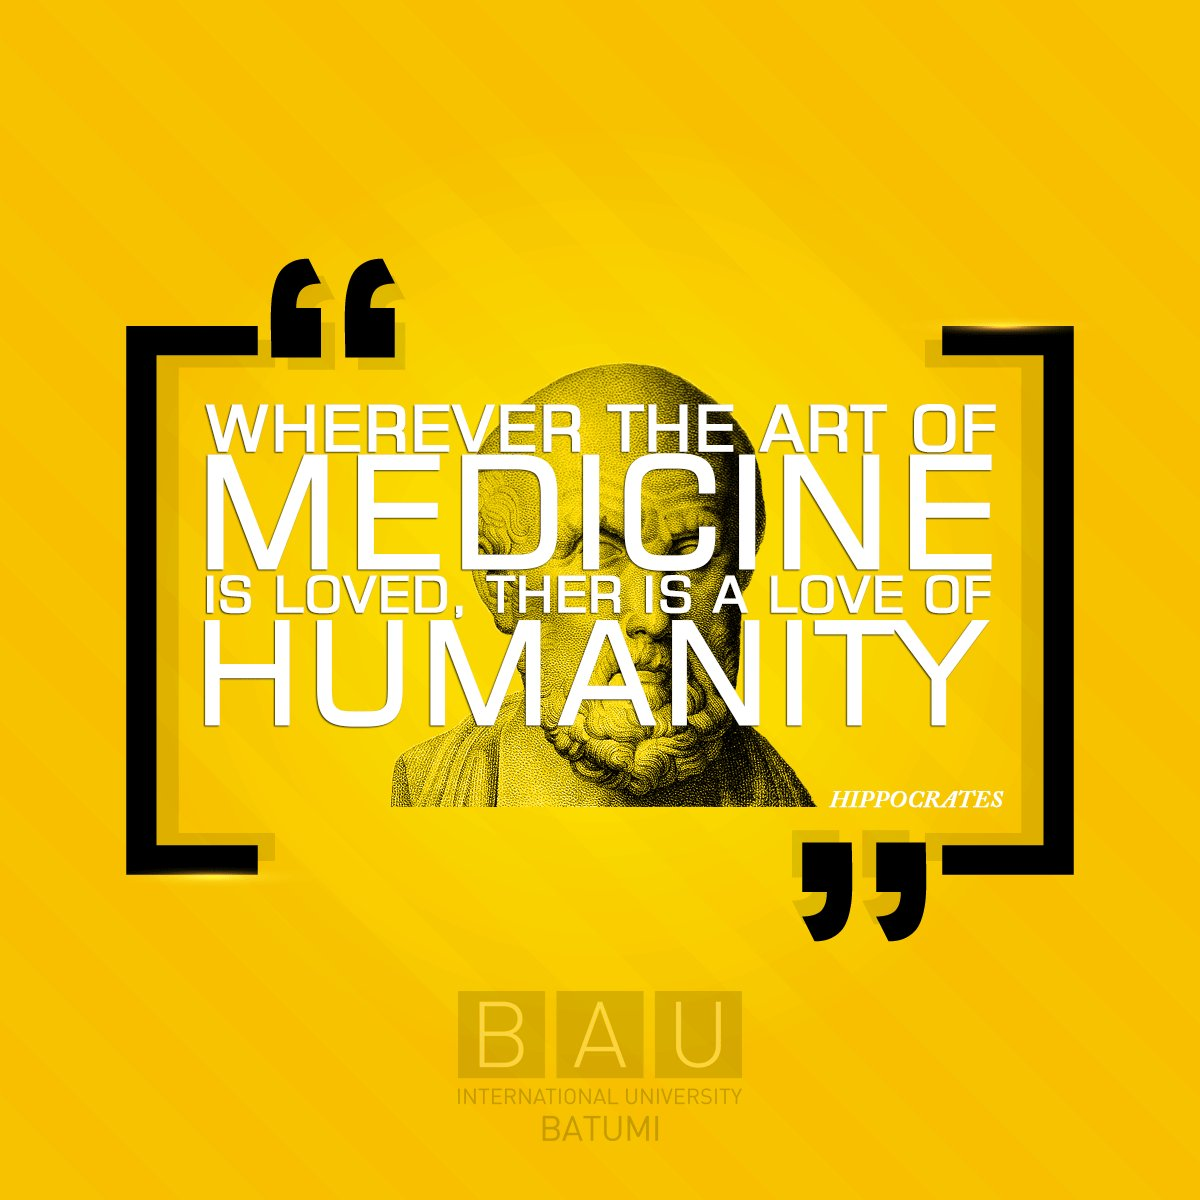 For future students  #bau  #bauintbatumi #inspirationquotes #medicine #medicinequotes #students #studentslife #futurestudents @CoskunInce<br>http://pic.twitter.com/6tgAcYTPx3